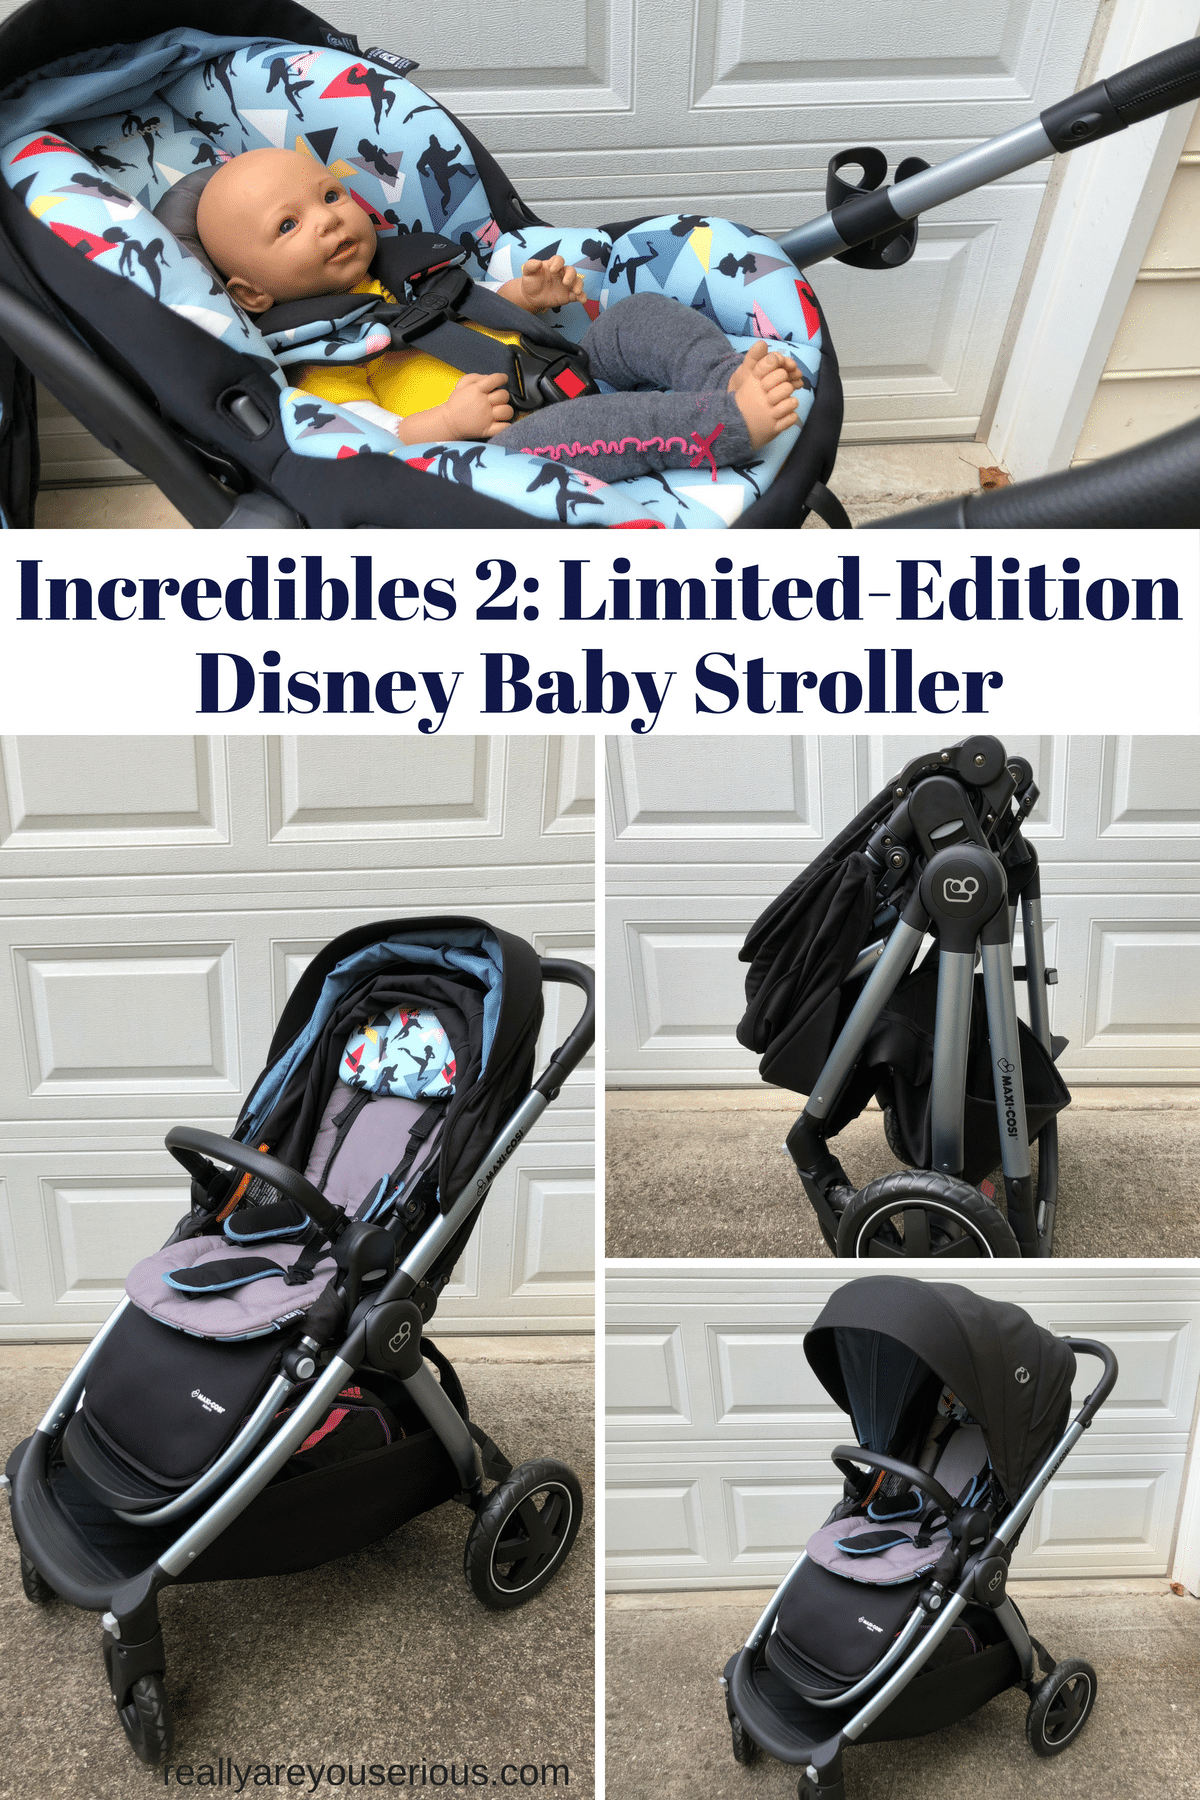 Incredibles 2- Limited-Edition Disney Baby Stroller